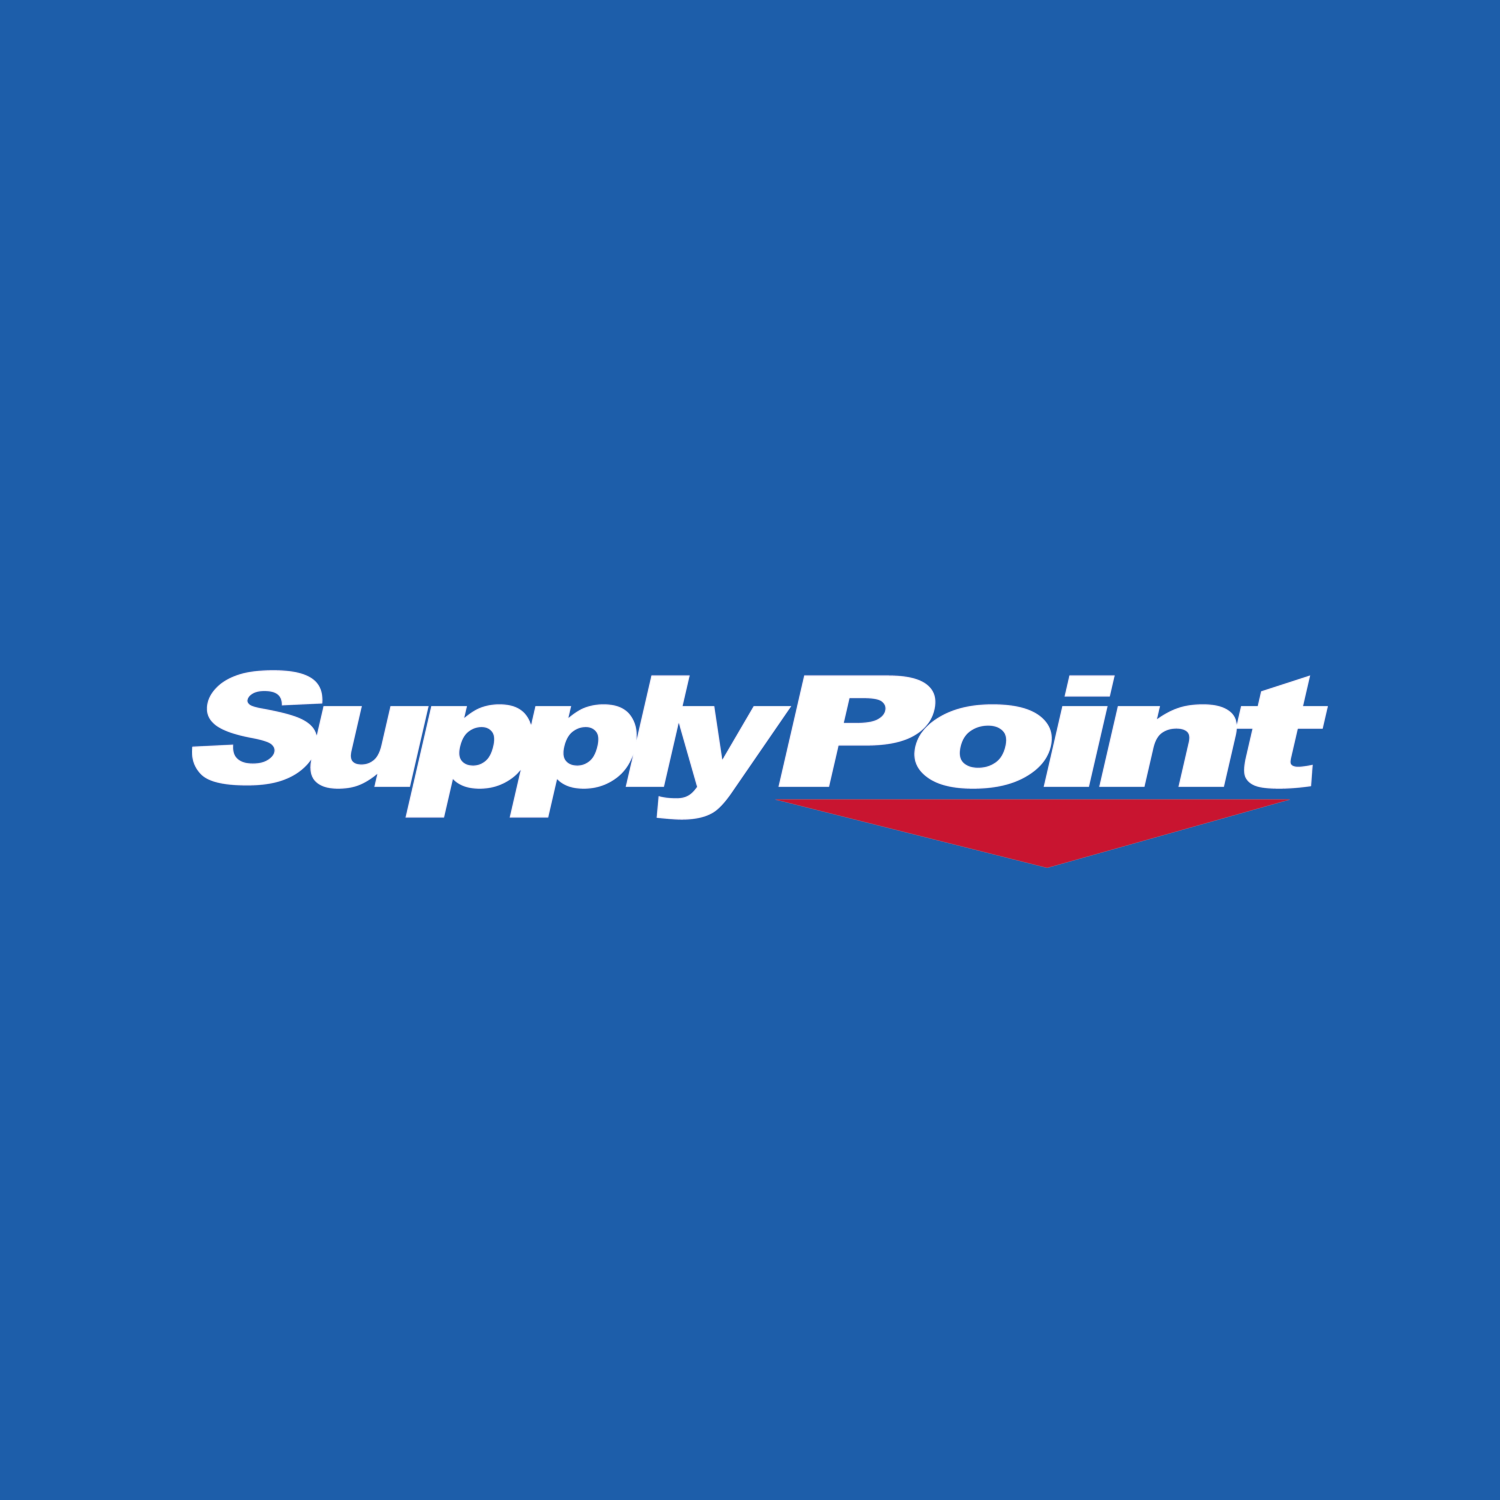 SUPPLY POINT